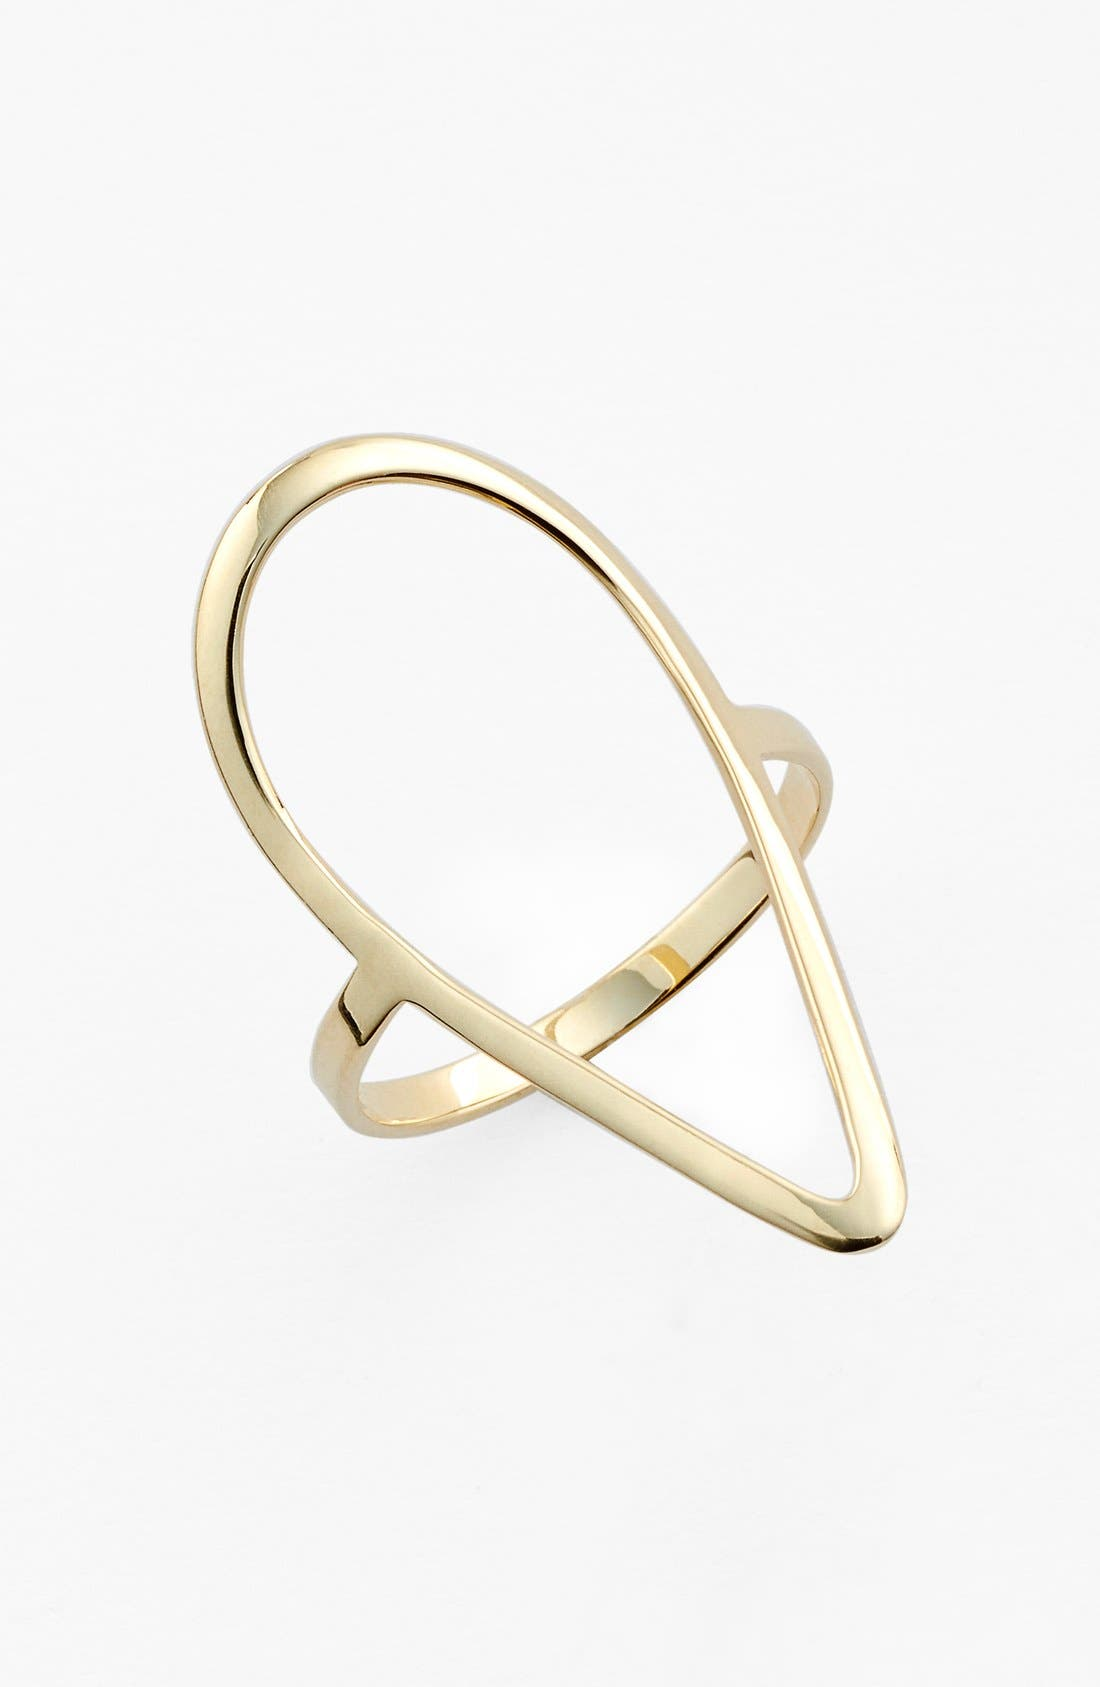 Alternate Image 1 Selected - Lana Jewelry 'Pear' Open Ring